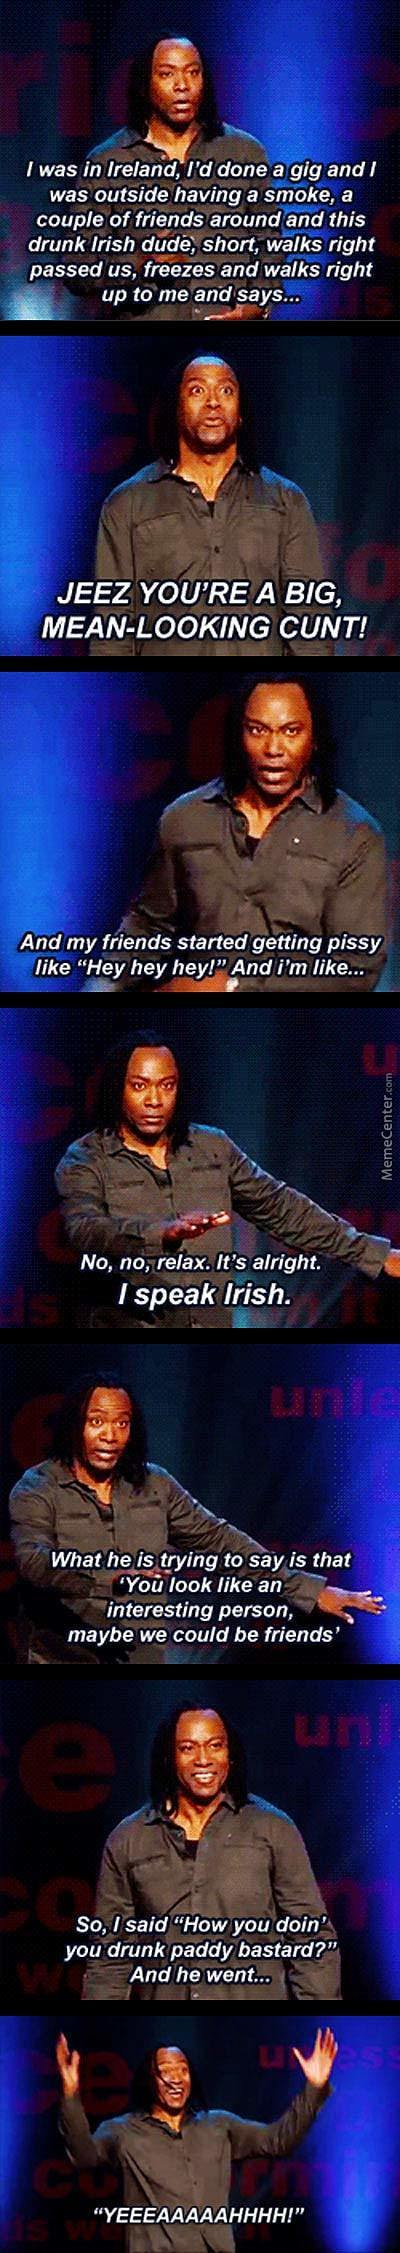 No, No Relax. I Speak Irish